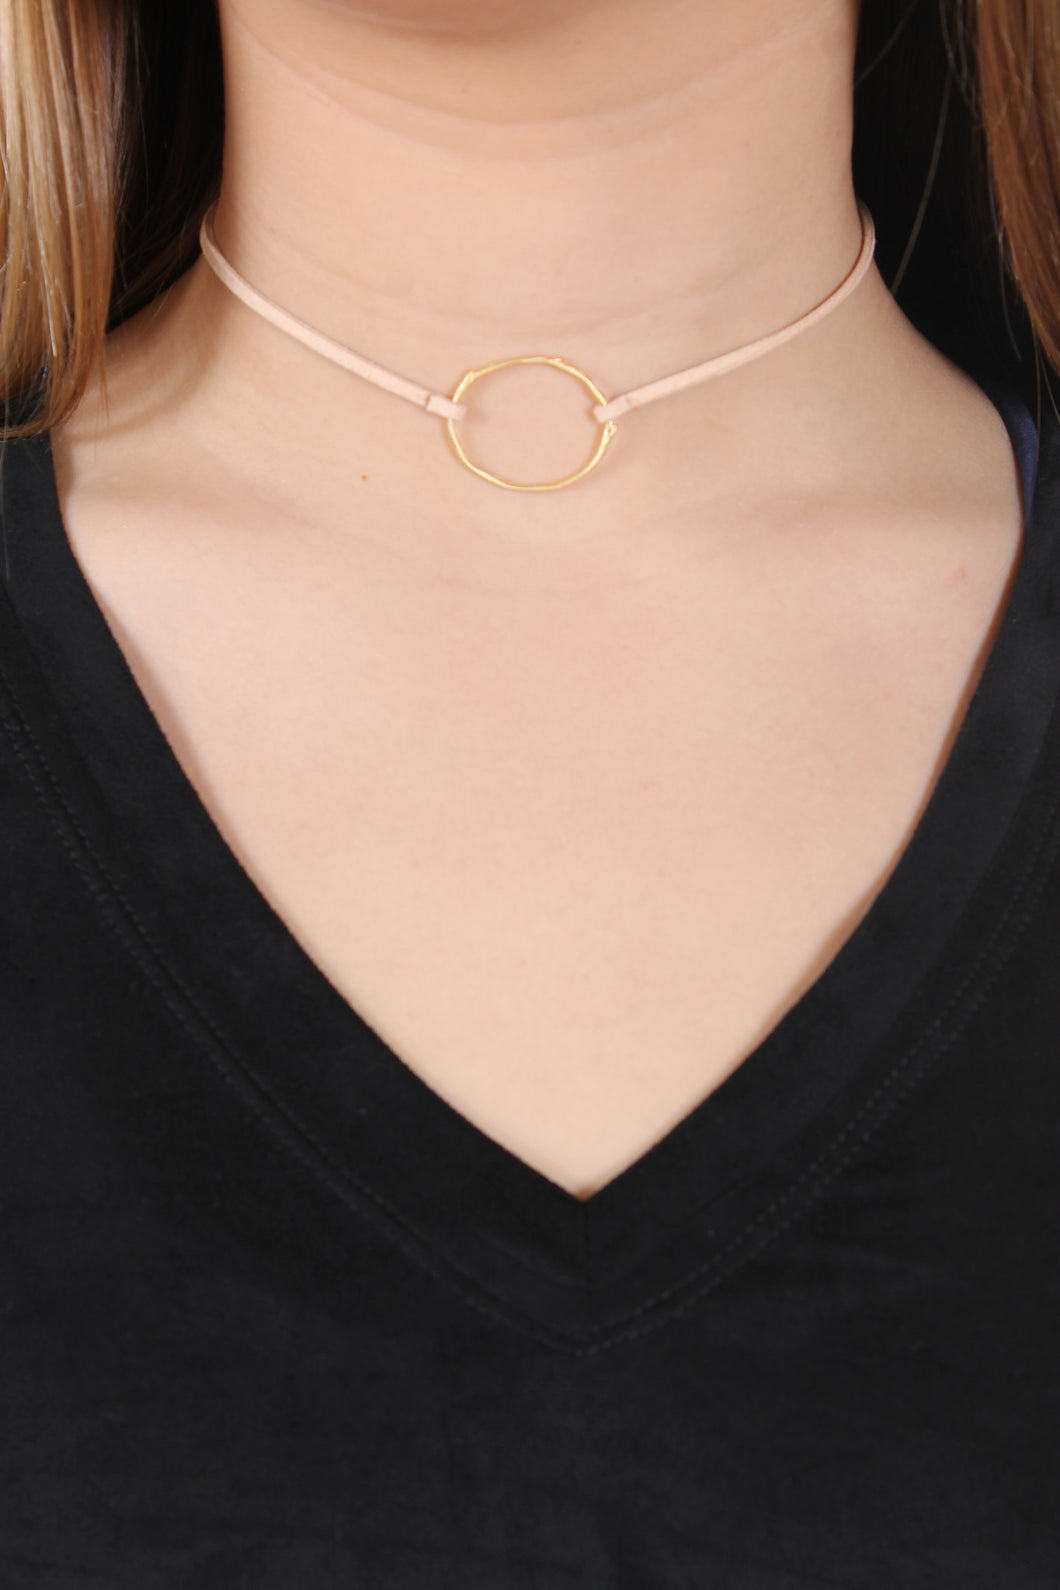 Nude necklace - Thorn Ring Choker